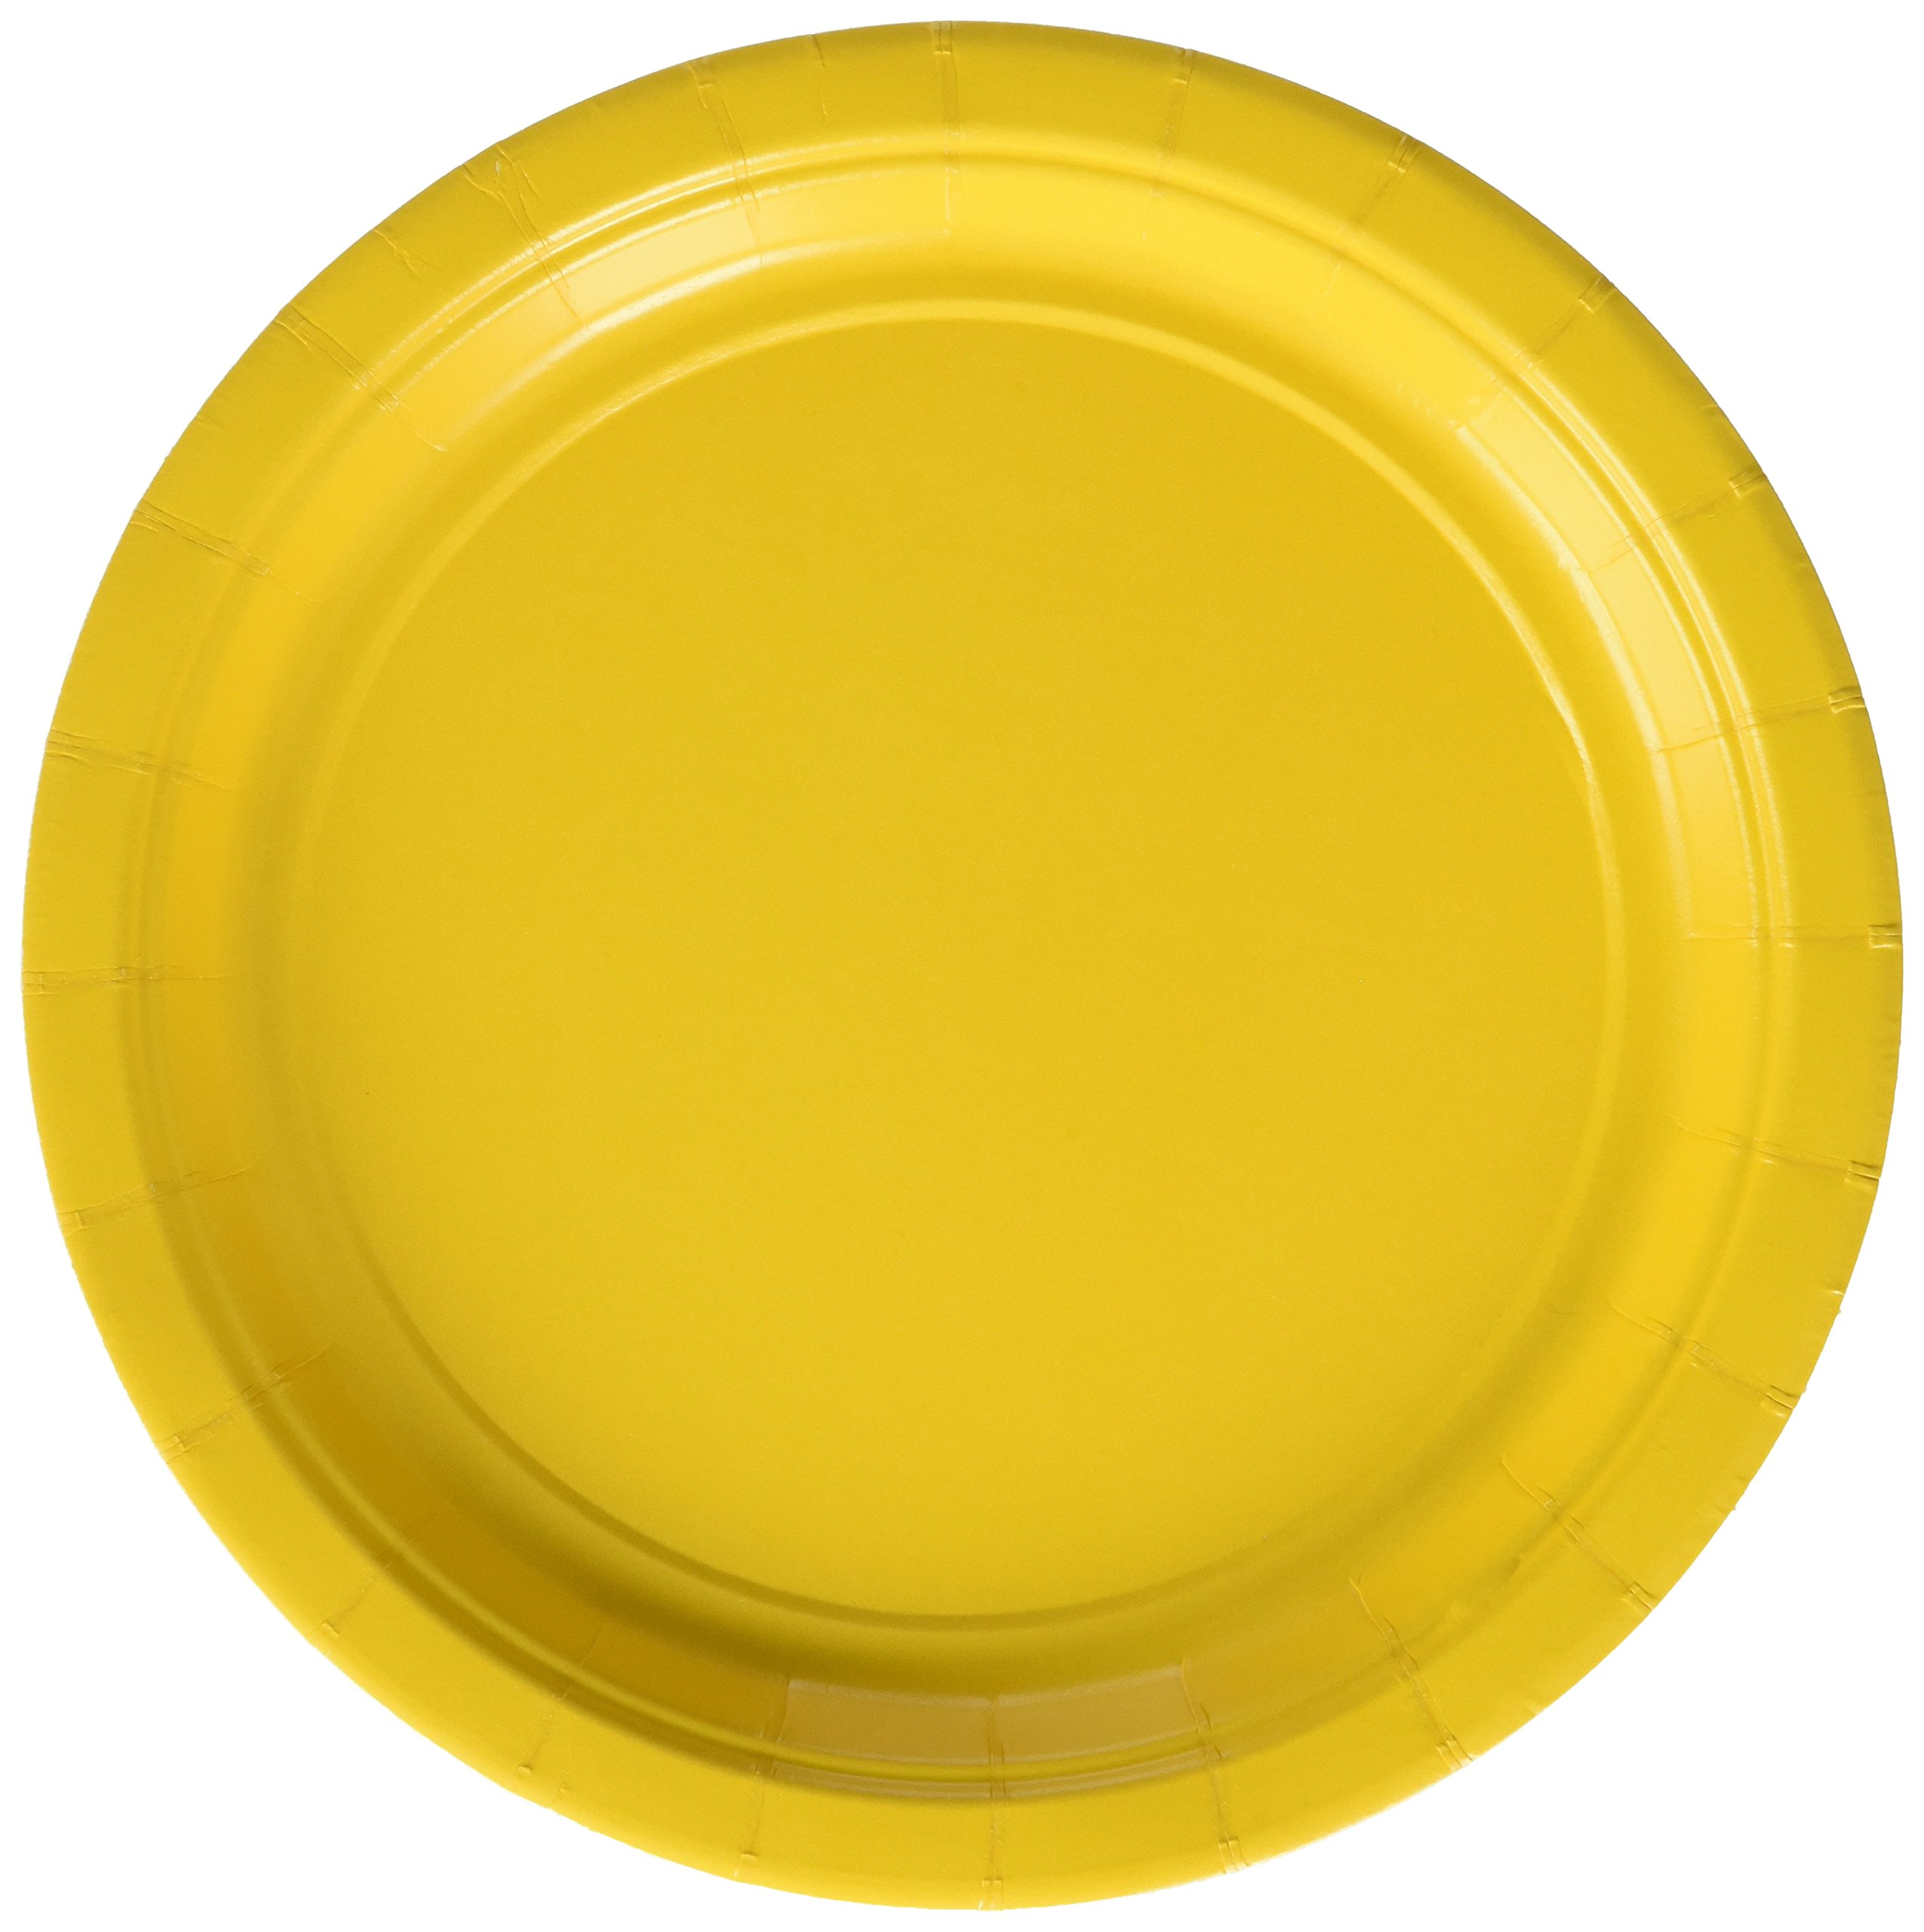 Amscan Durable Round Dessert Plates Big Bundle Party Tableware Paper, 7'', Pack of 50 Childrens, Yellow Sunshine, 7''